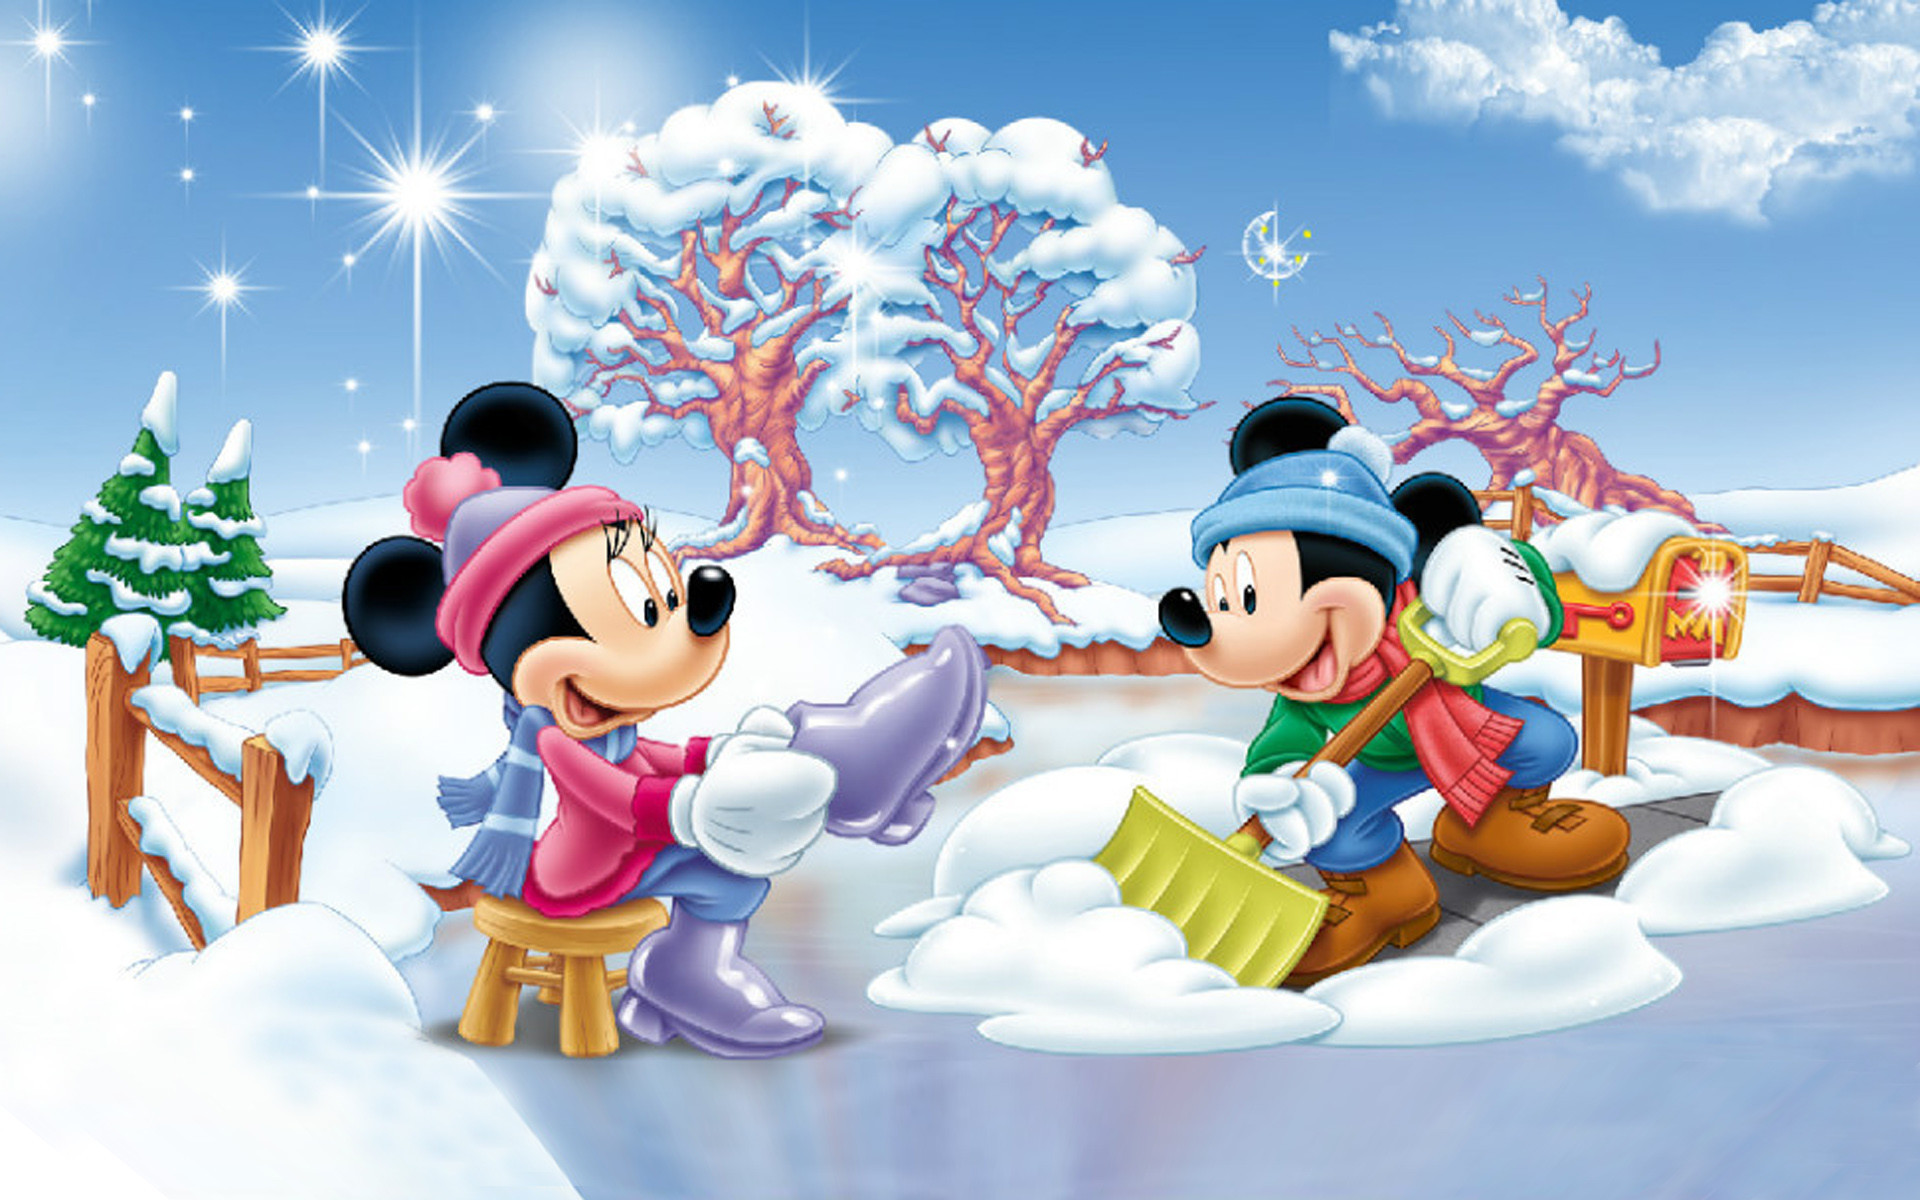 1920x1200 1080x1920 Mickey and Minnie Wallpaper Inspirational Cute Disney Wallpapers  for iPhone sony Mobile Phones